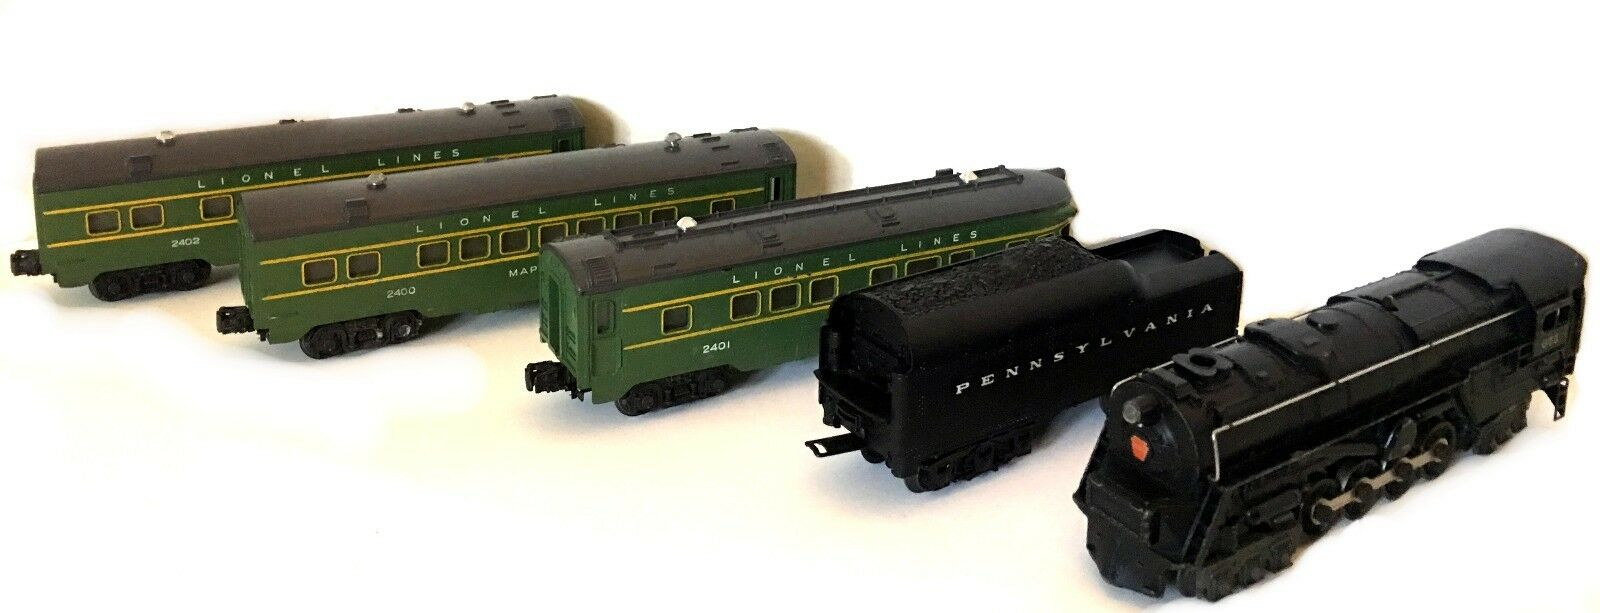 Lionel 2140WS Postwar Set 1949 and Catalog and Selected Literature No Boxes